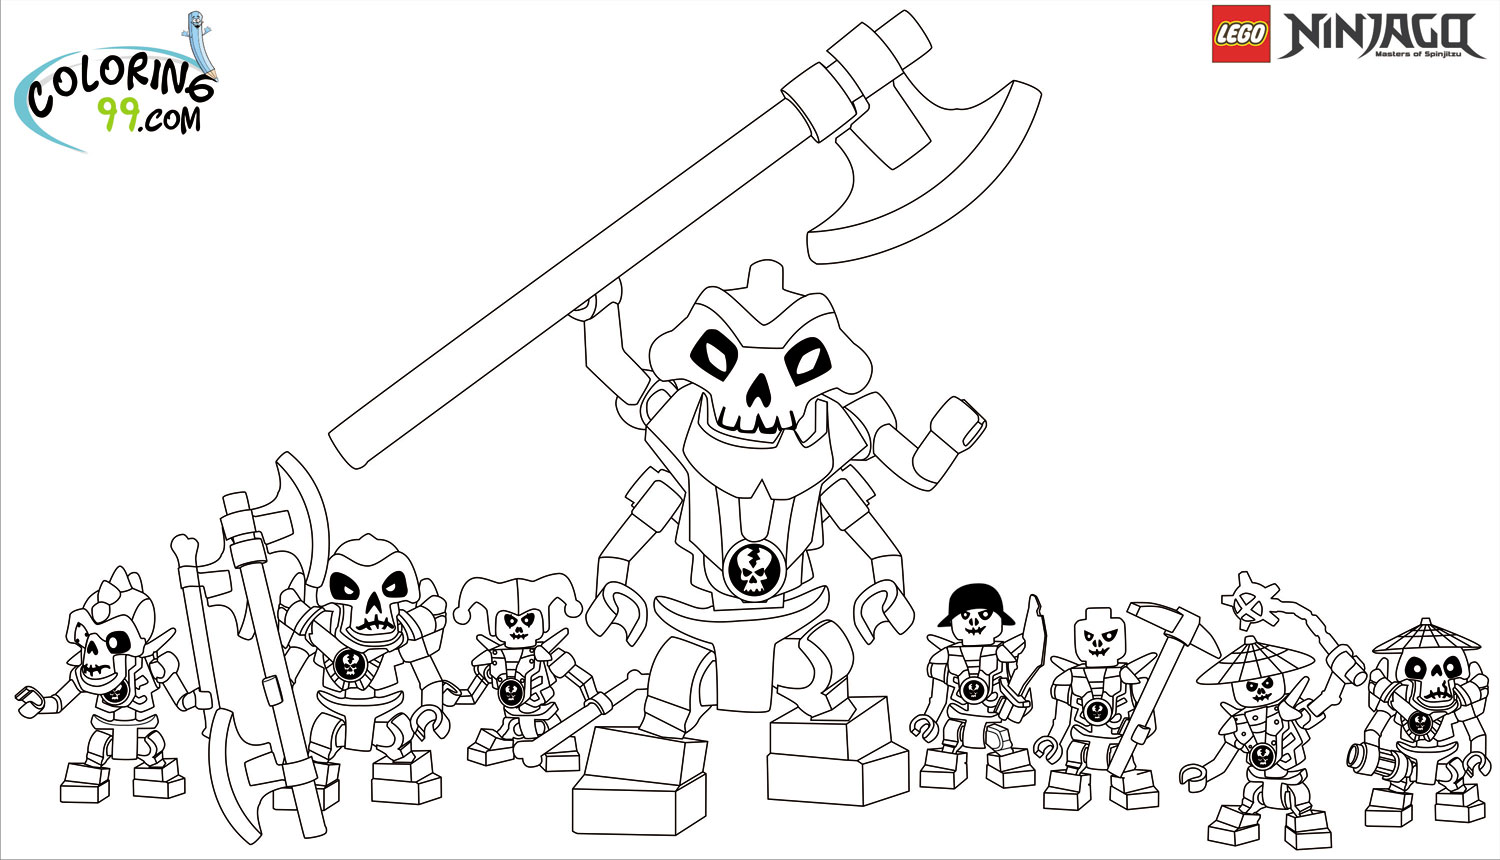 Free Printable Ninjago Coloring Pages For Kids Lego Ninjago